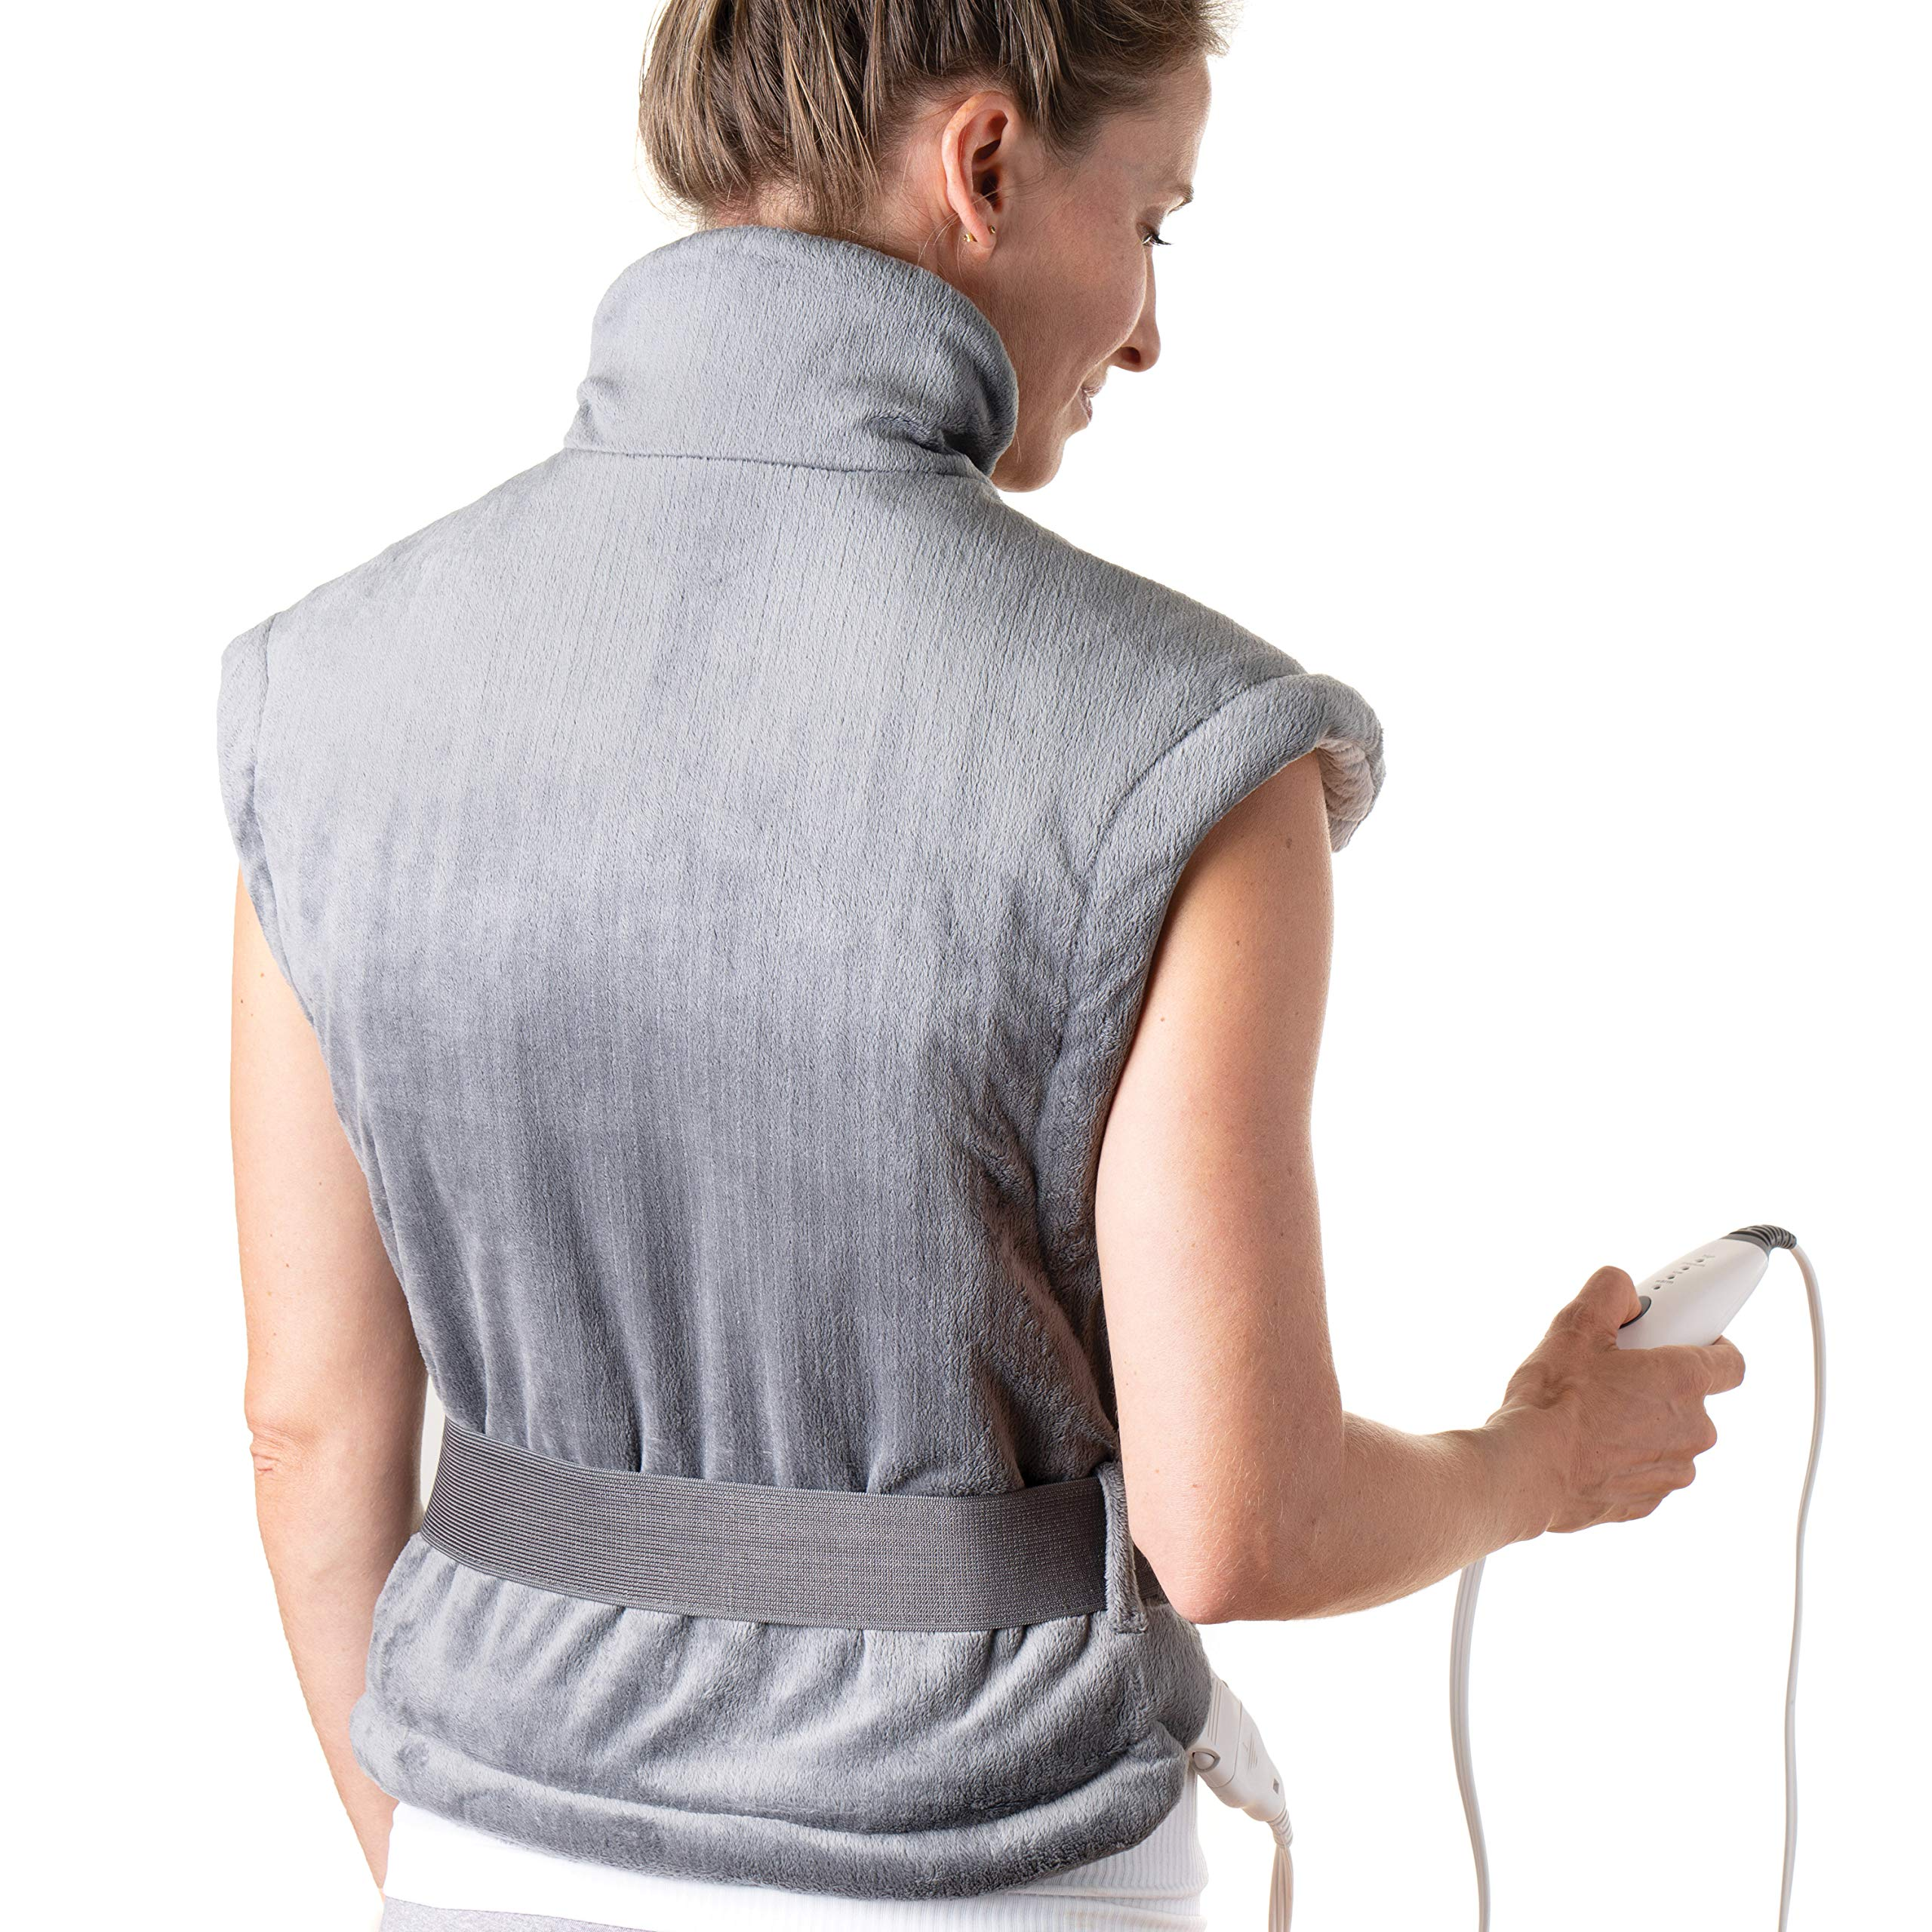 Pure Enrichment PureRelief XL Extra-Long Back & Neck Heating Pad - Fast-Heating Technology Contoured for Neck, Back and Shoulder Heat Therapy with Magnetic Closure, Adjustable Belt and Storage Bag by Pure Enrichment